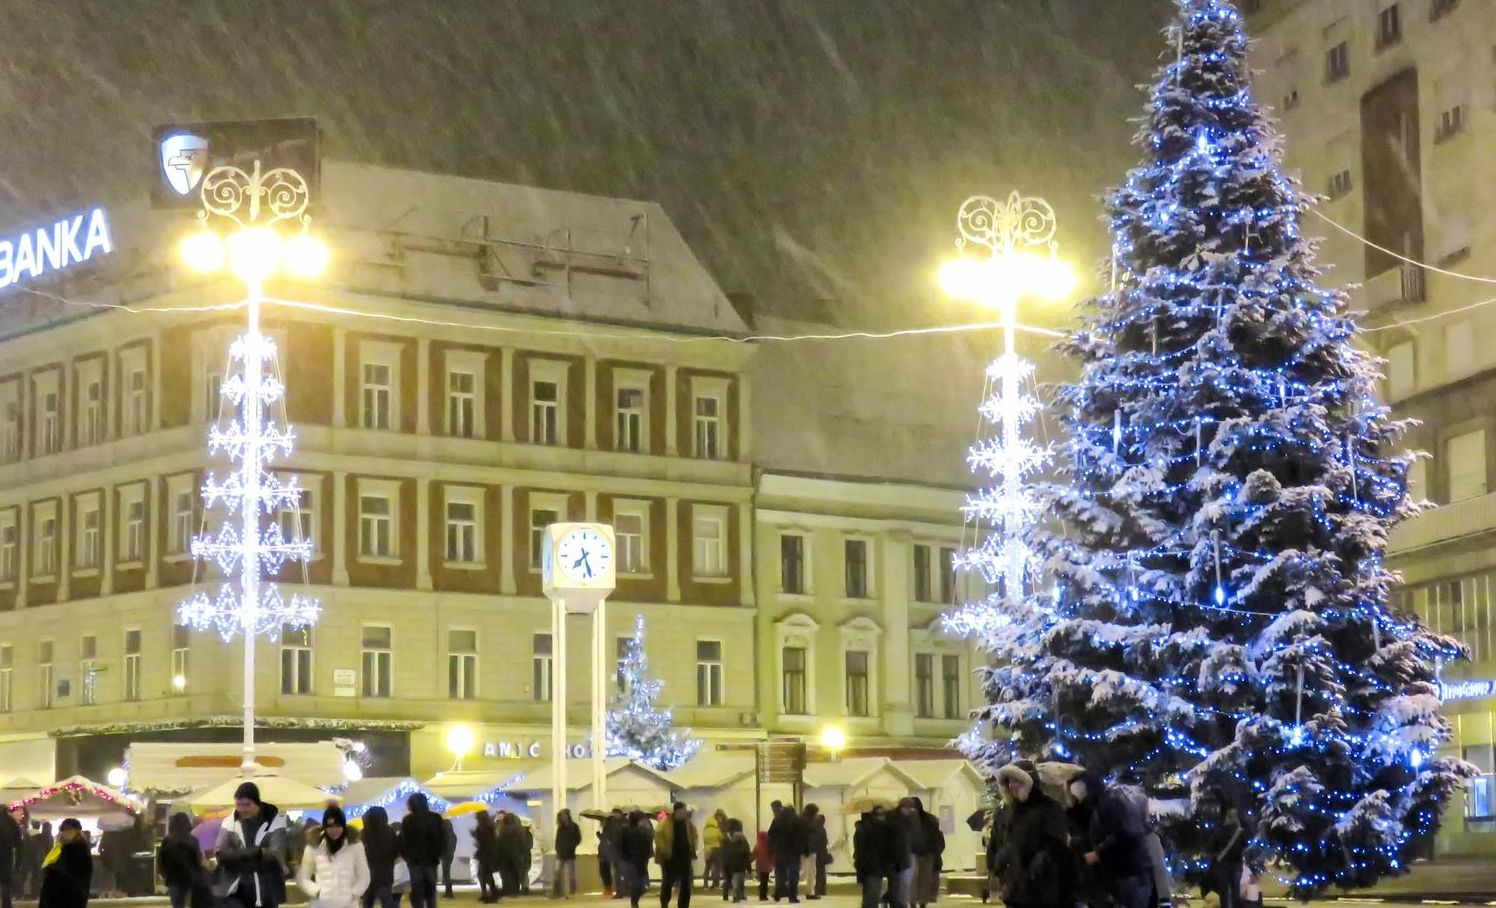 First White Christmas in Croatia in 9 Years?